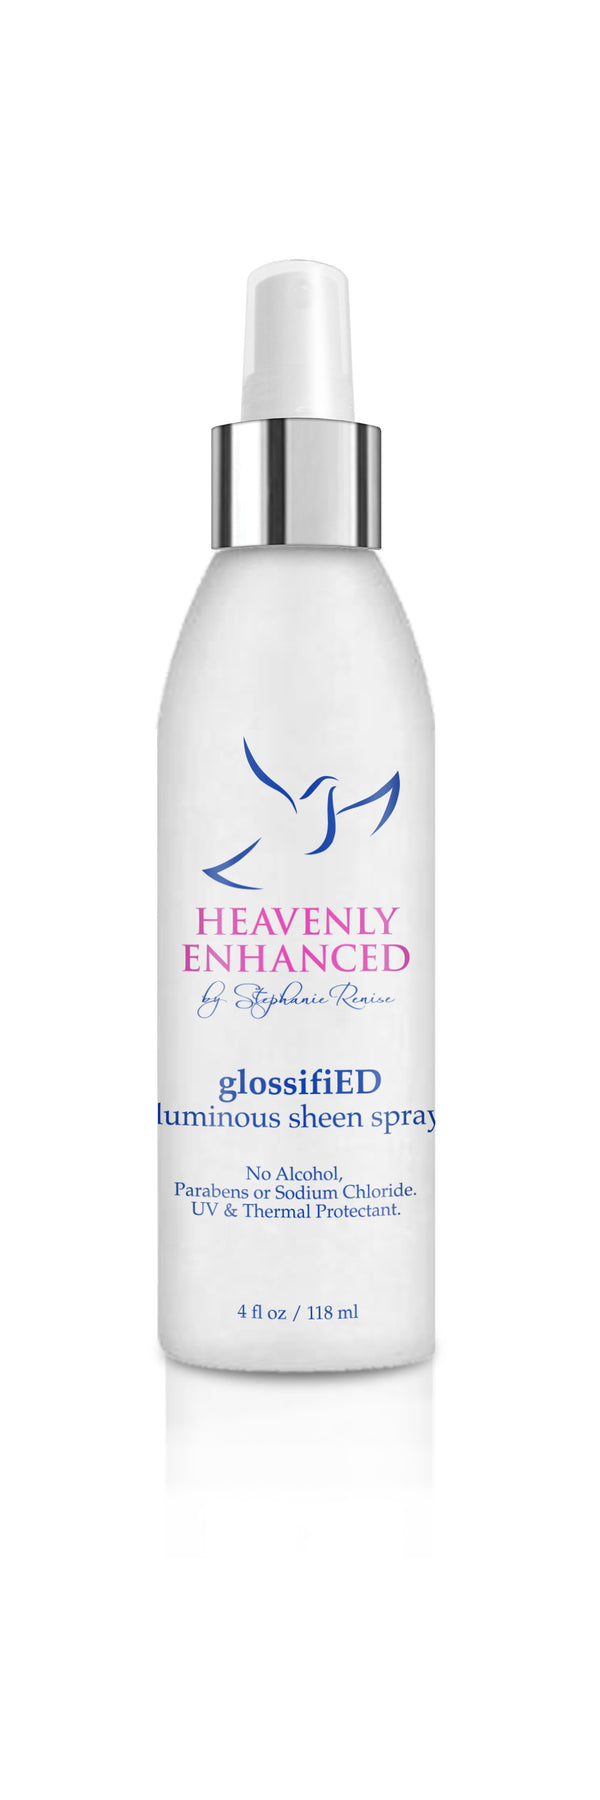 glossifiED - luminous sheen spray